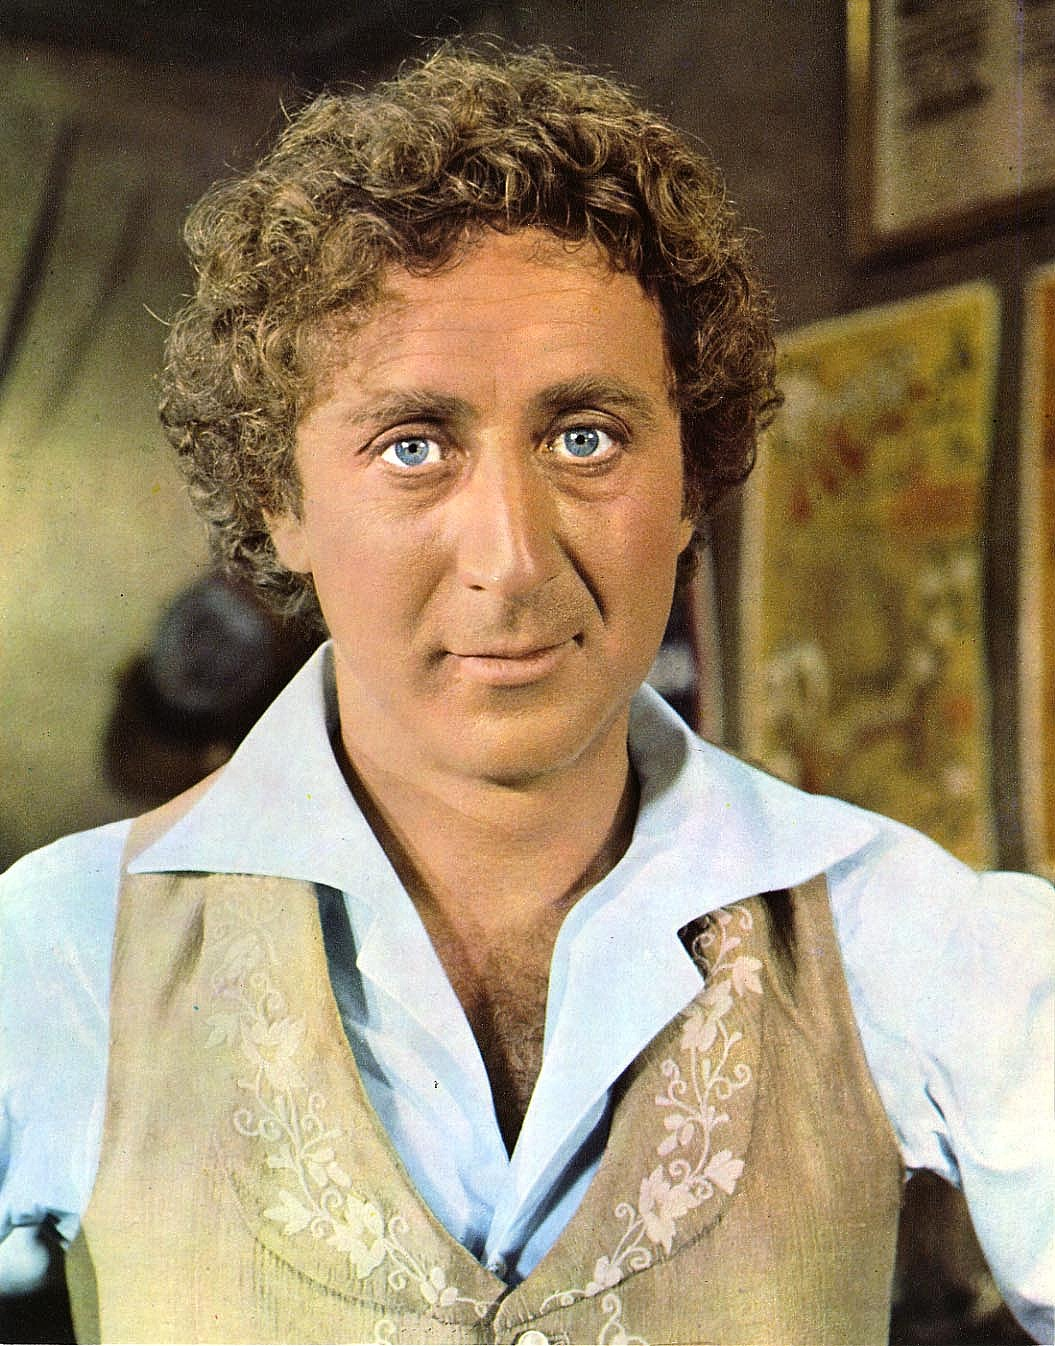 How tall is Gene Wilder?